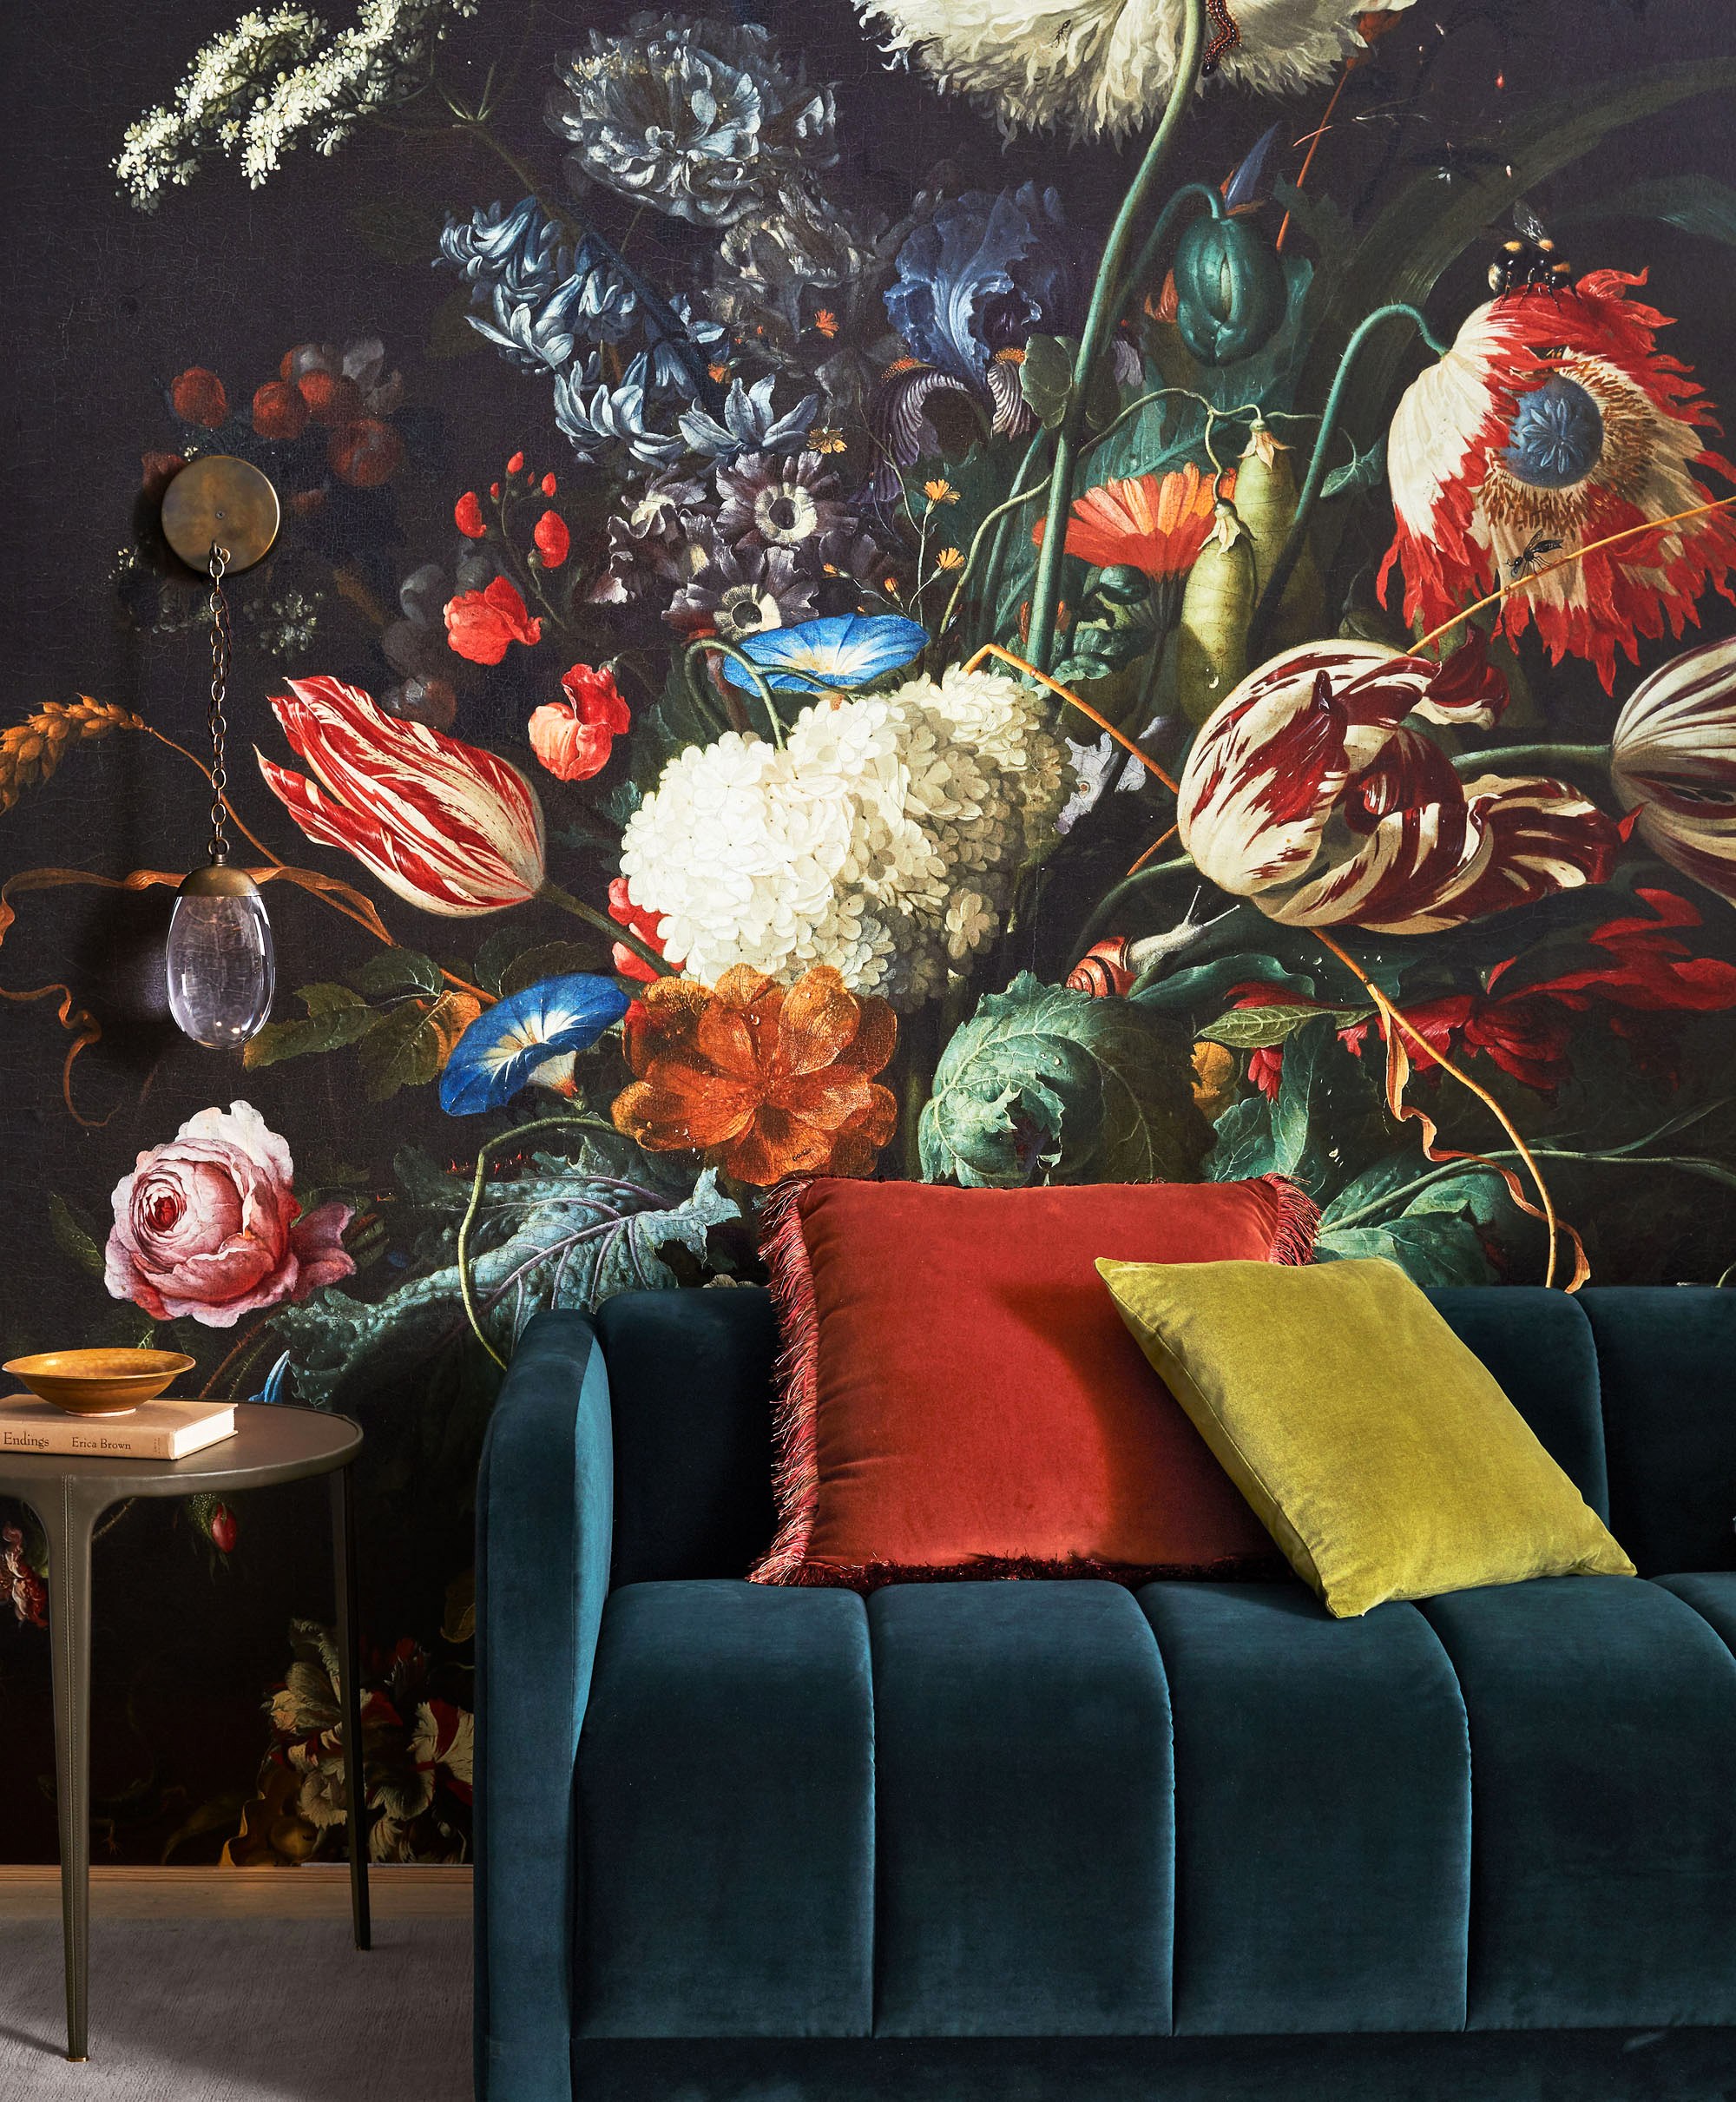 Statement Wall Murals Are One of the Biggest Décor Trends for 2019